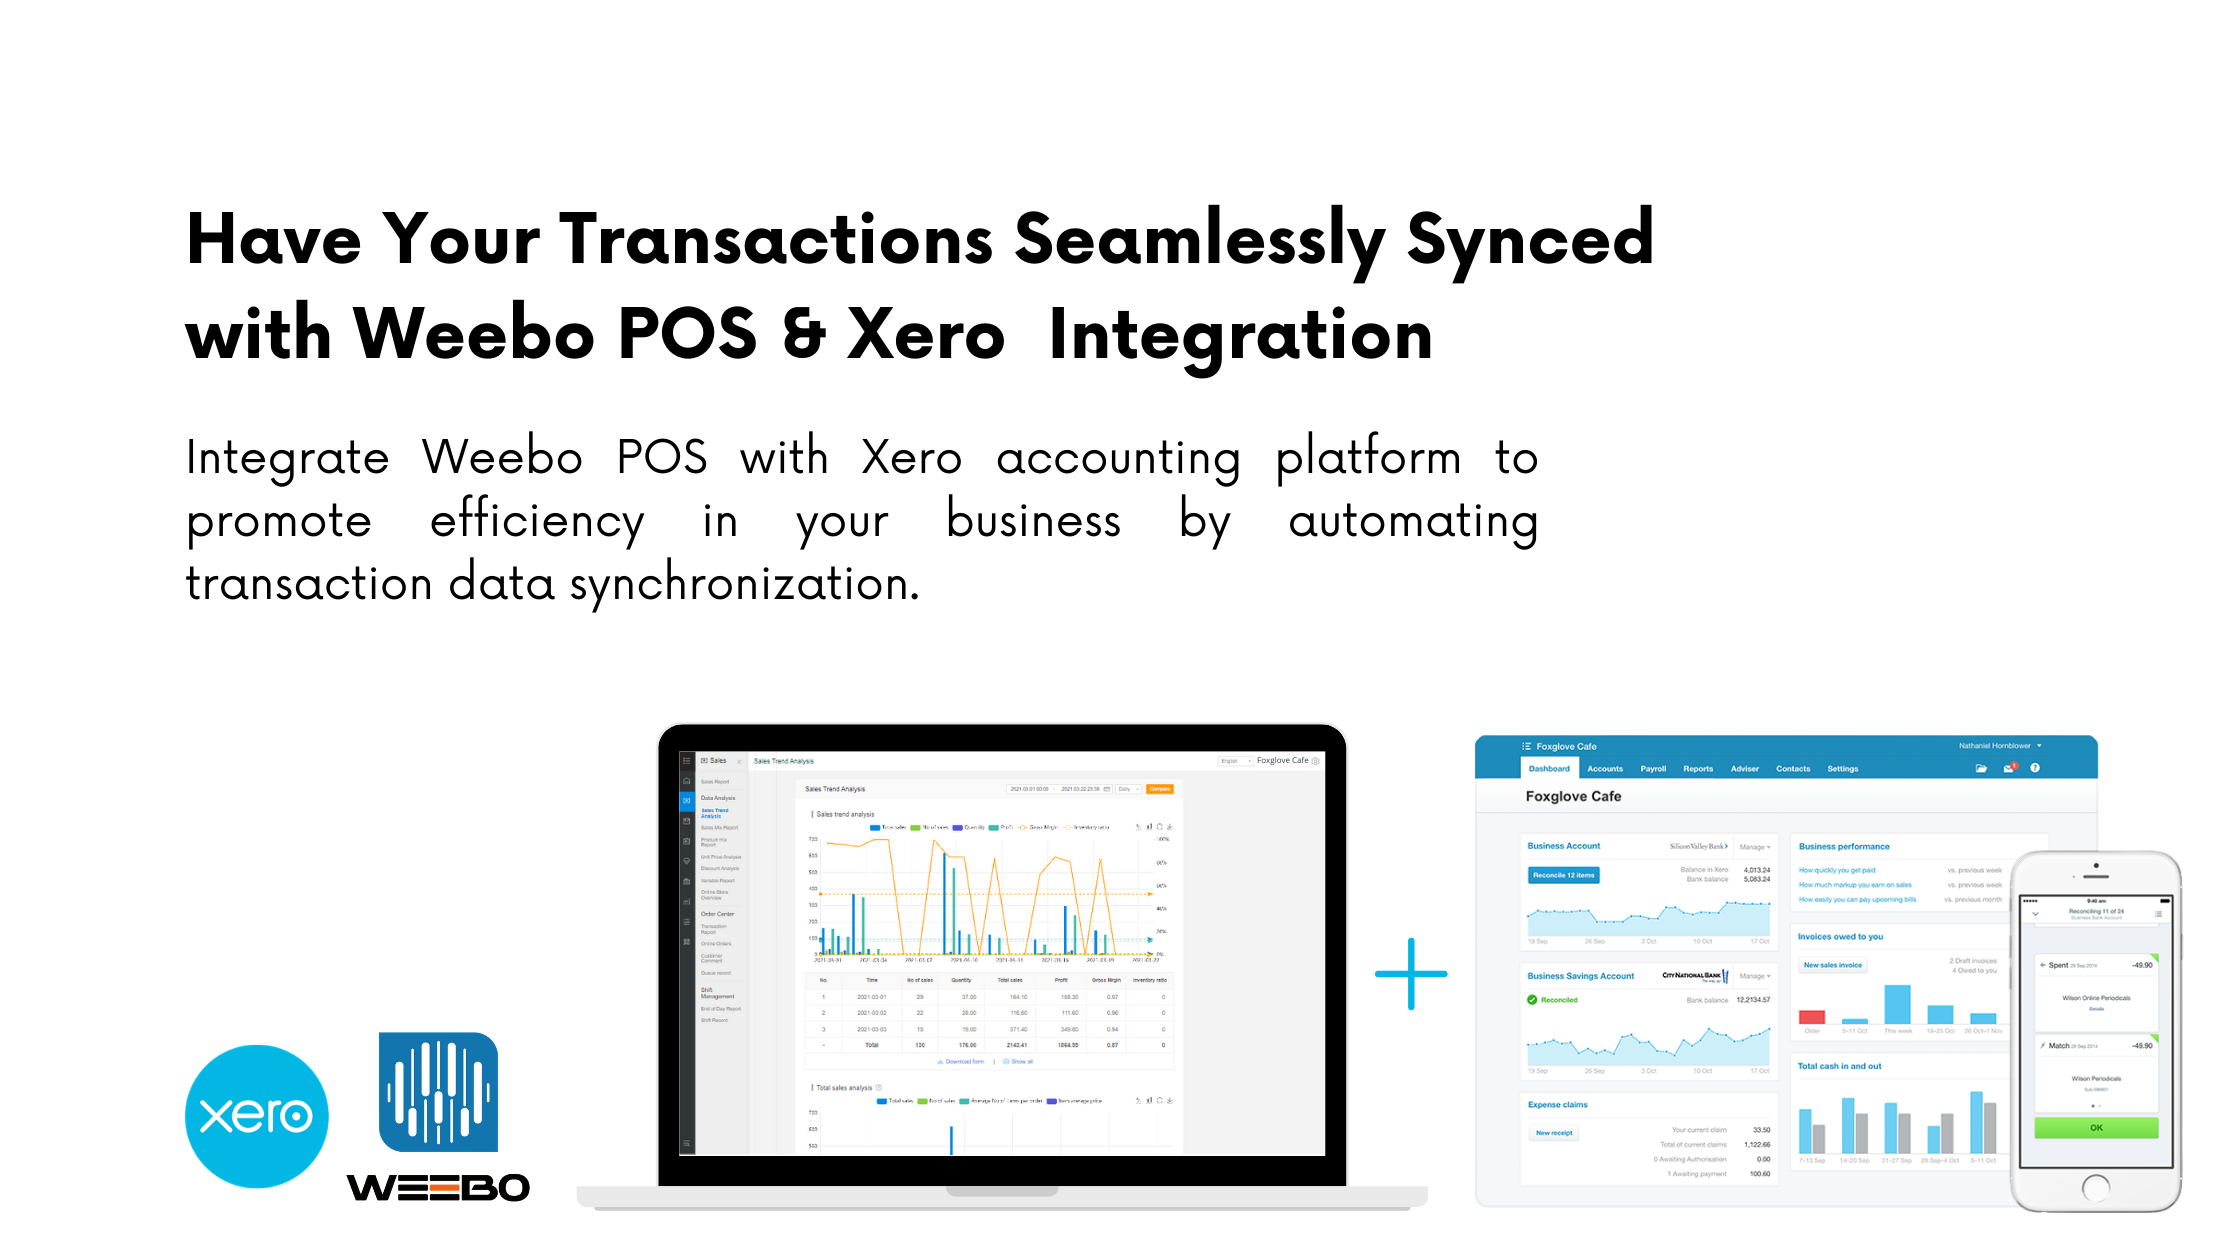 Integrate your POS with Xero accounting platform to promote efficiency in your business by automating transaction data synchronization.-4